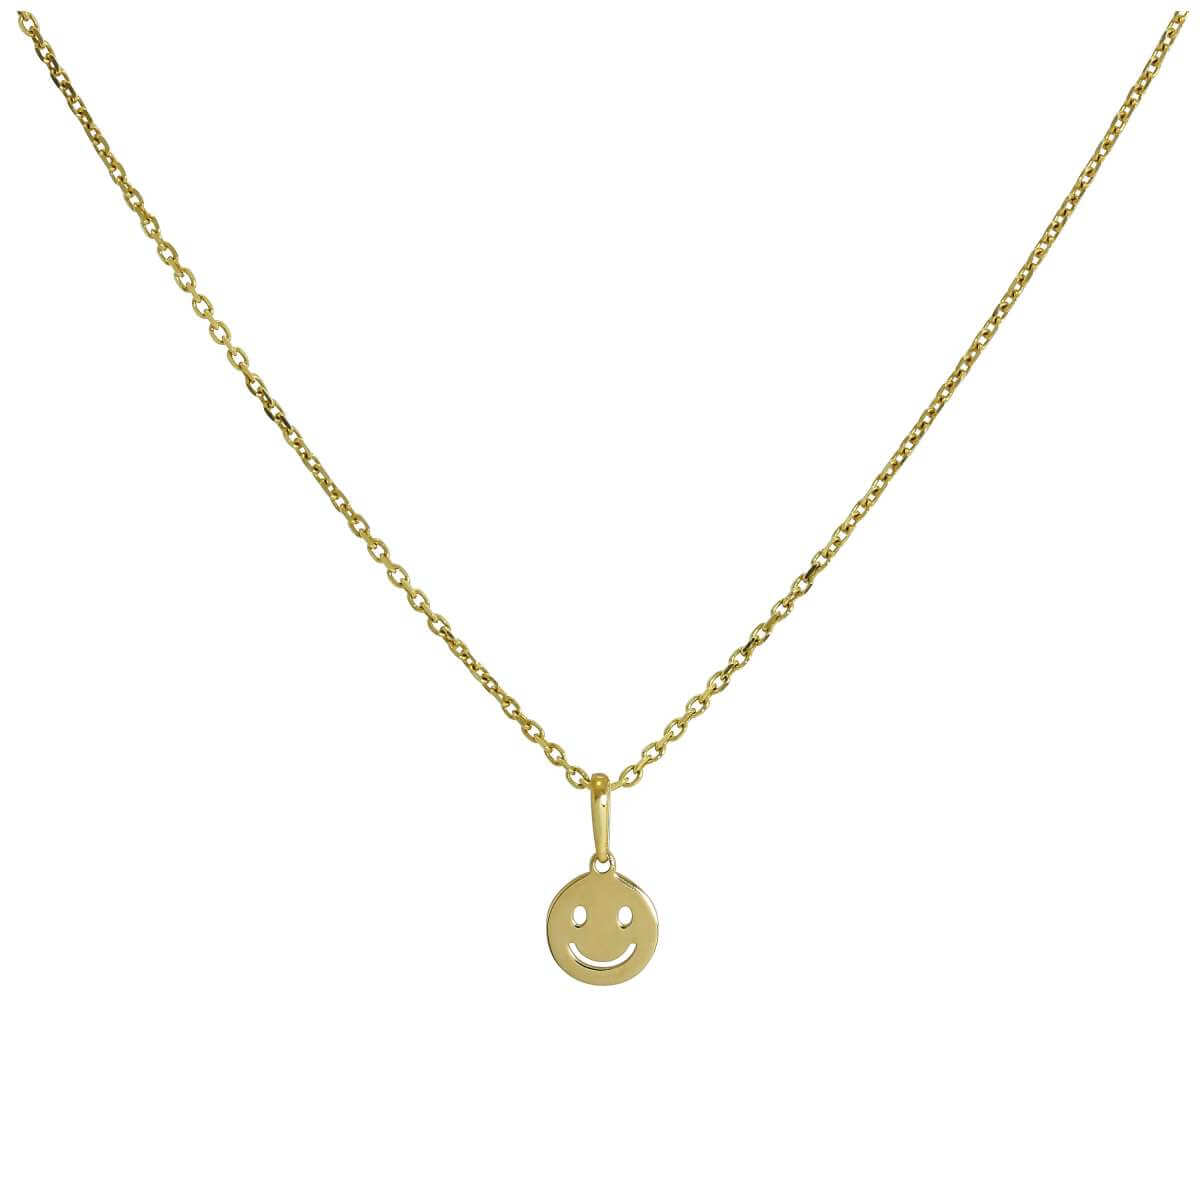 9ct Gold Smiley Face Pendant Necklace 16 - 20 Inches